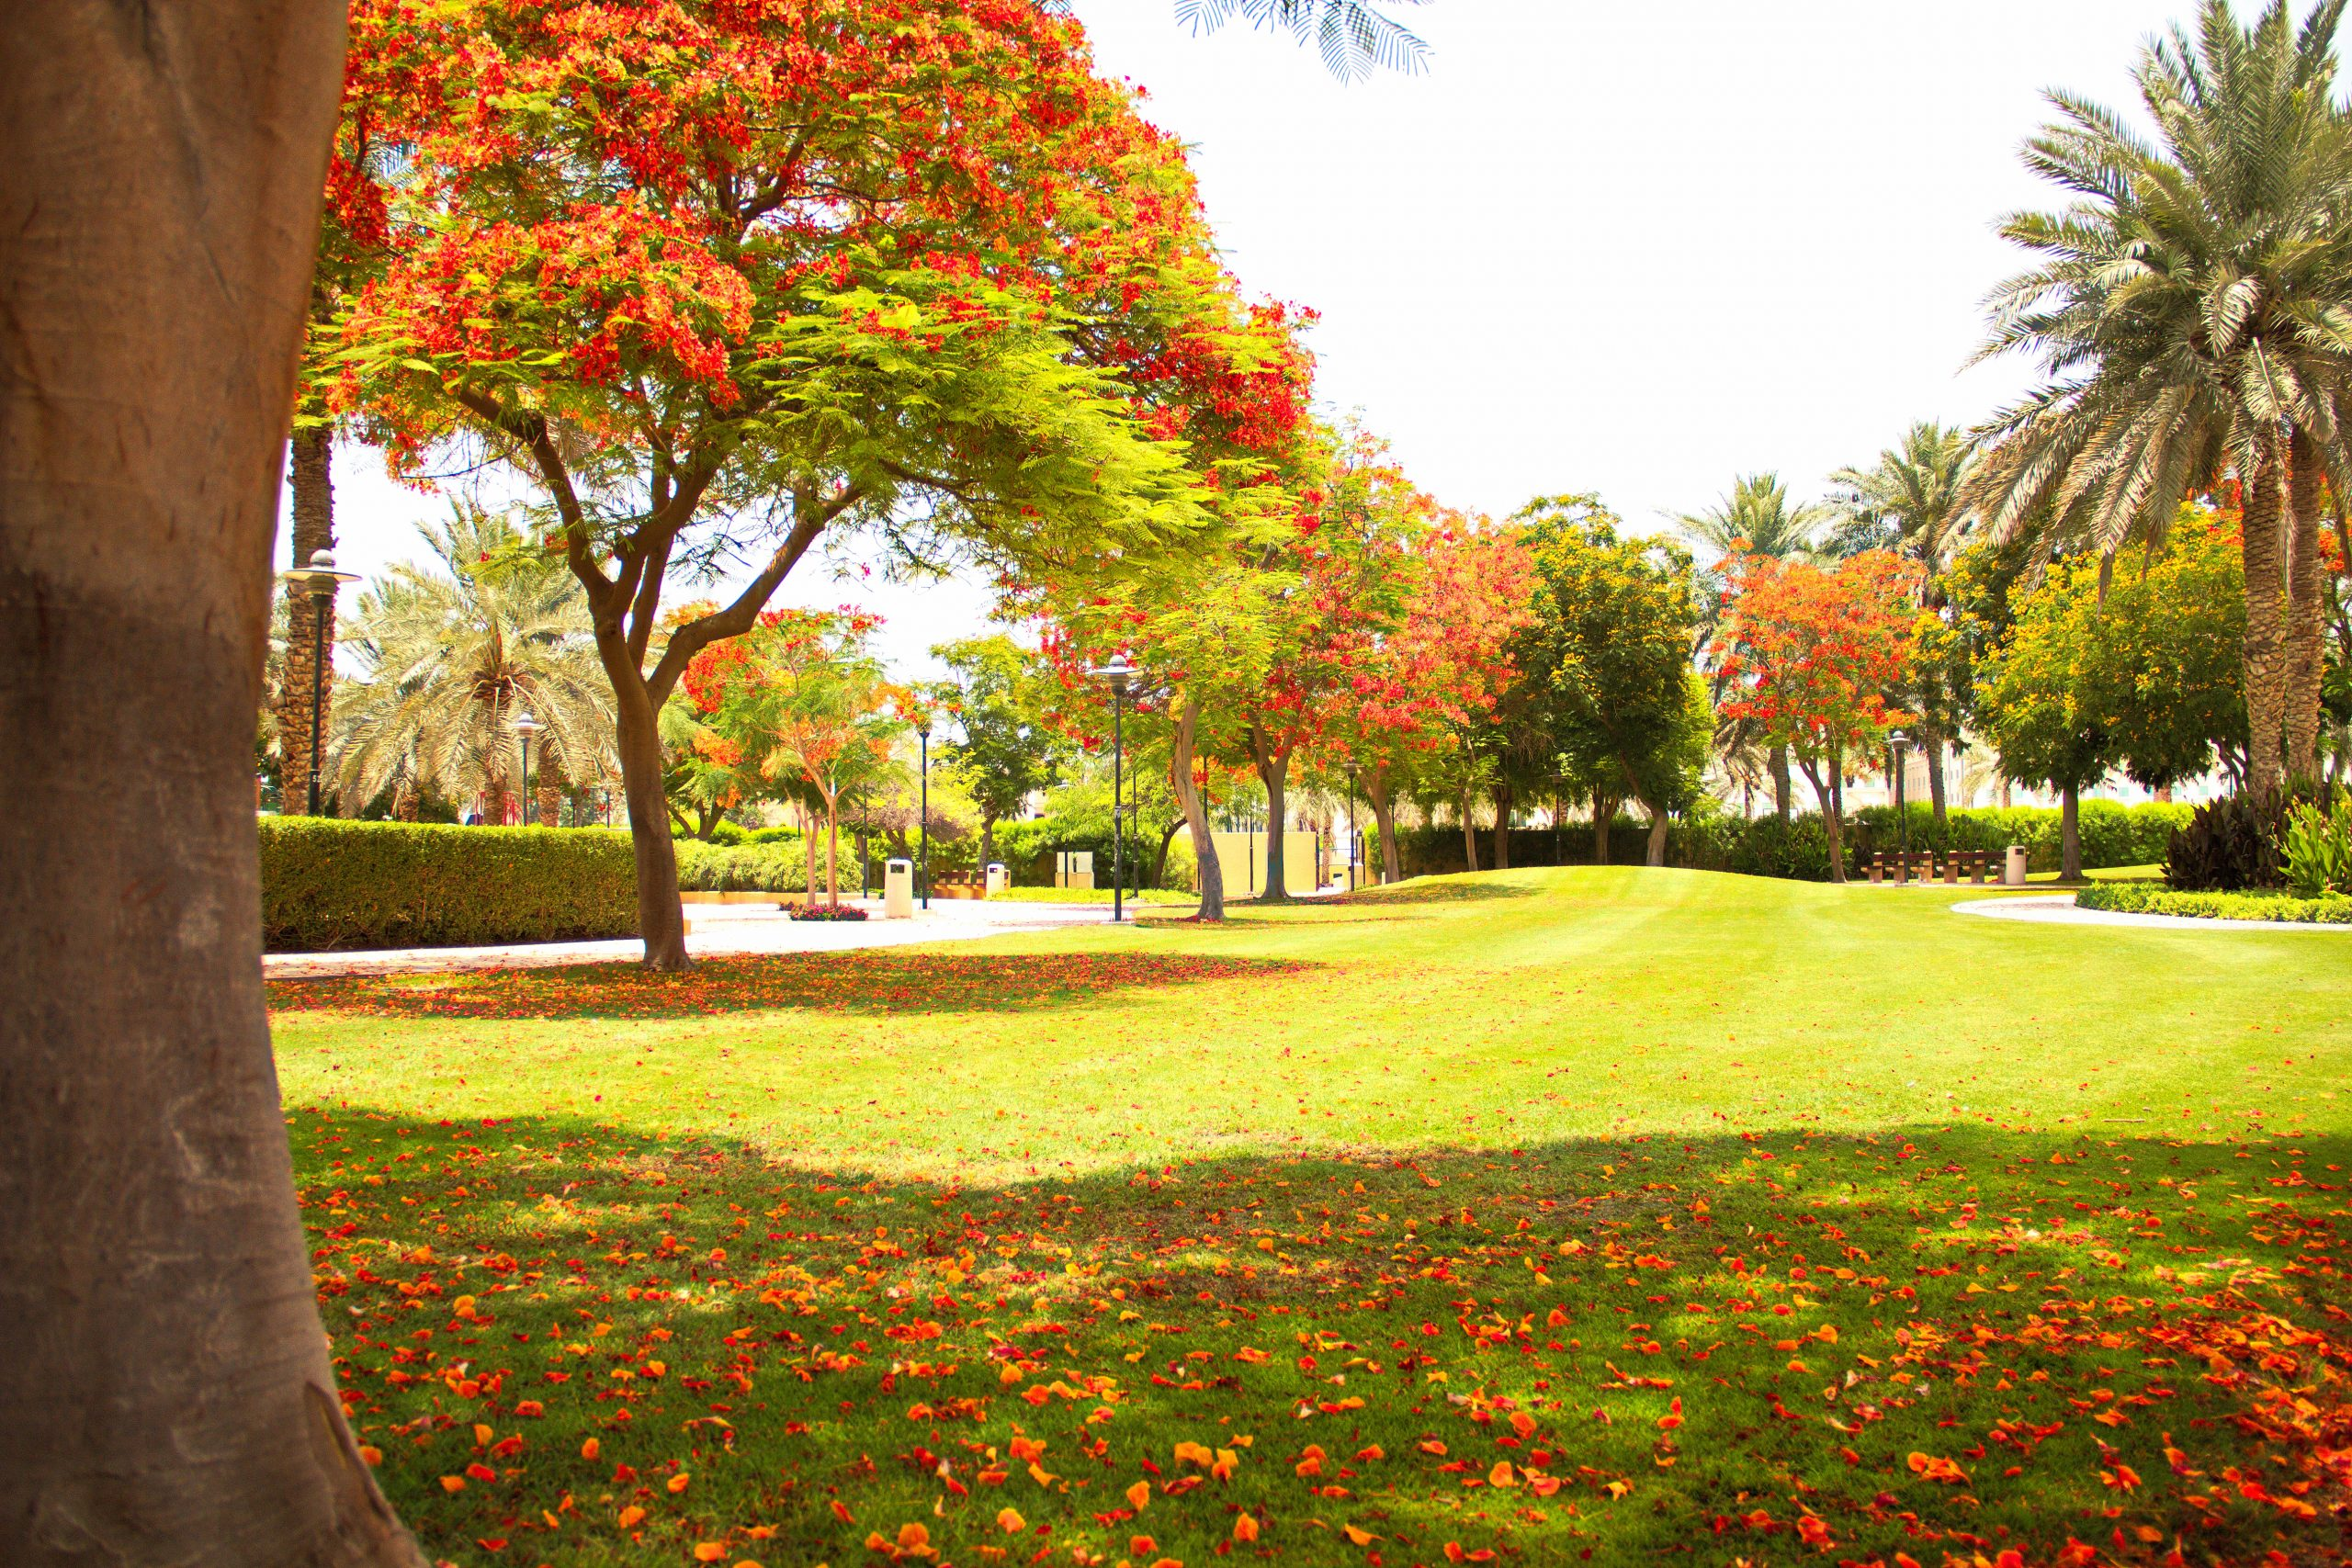 Greenery of a park